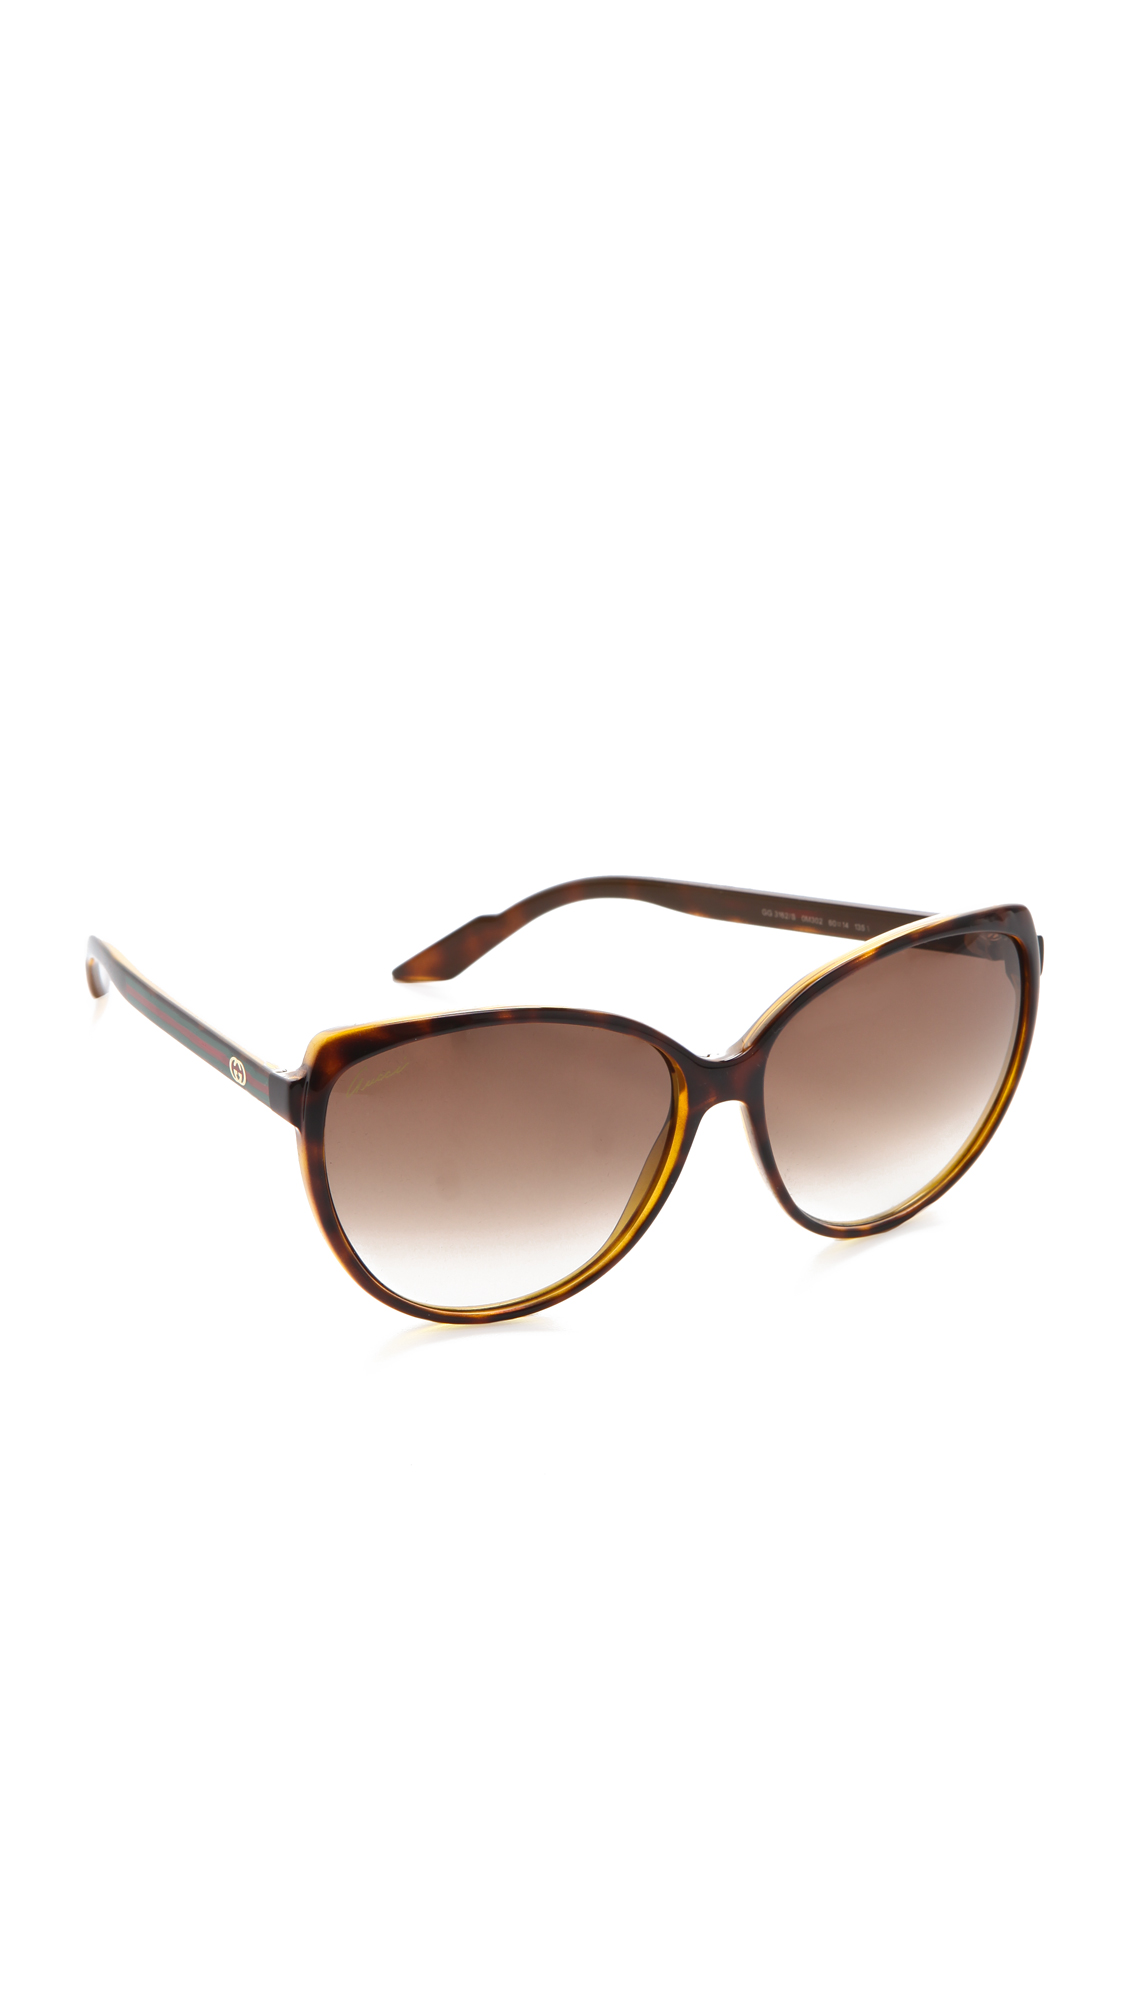 8f8bc26102 Gucci Youngster Cat Eye Sunglasses